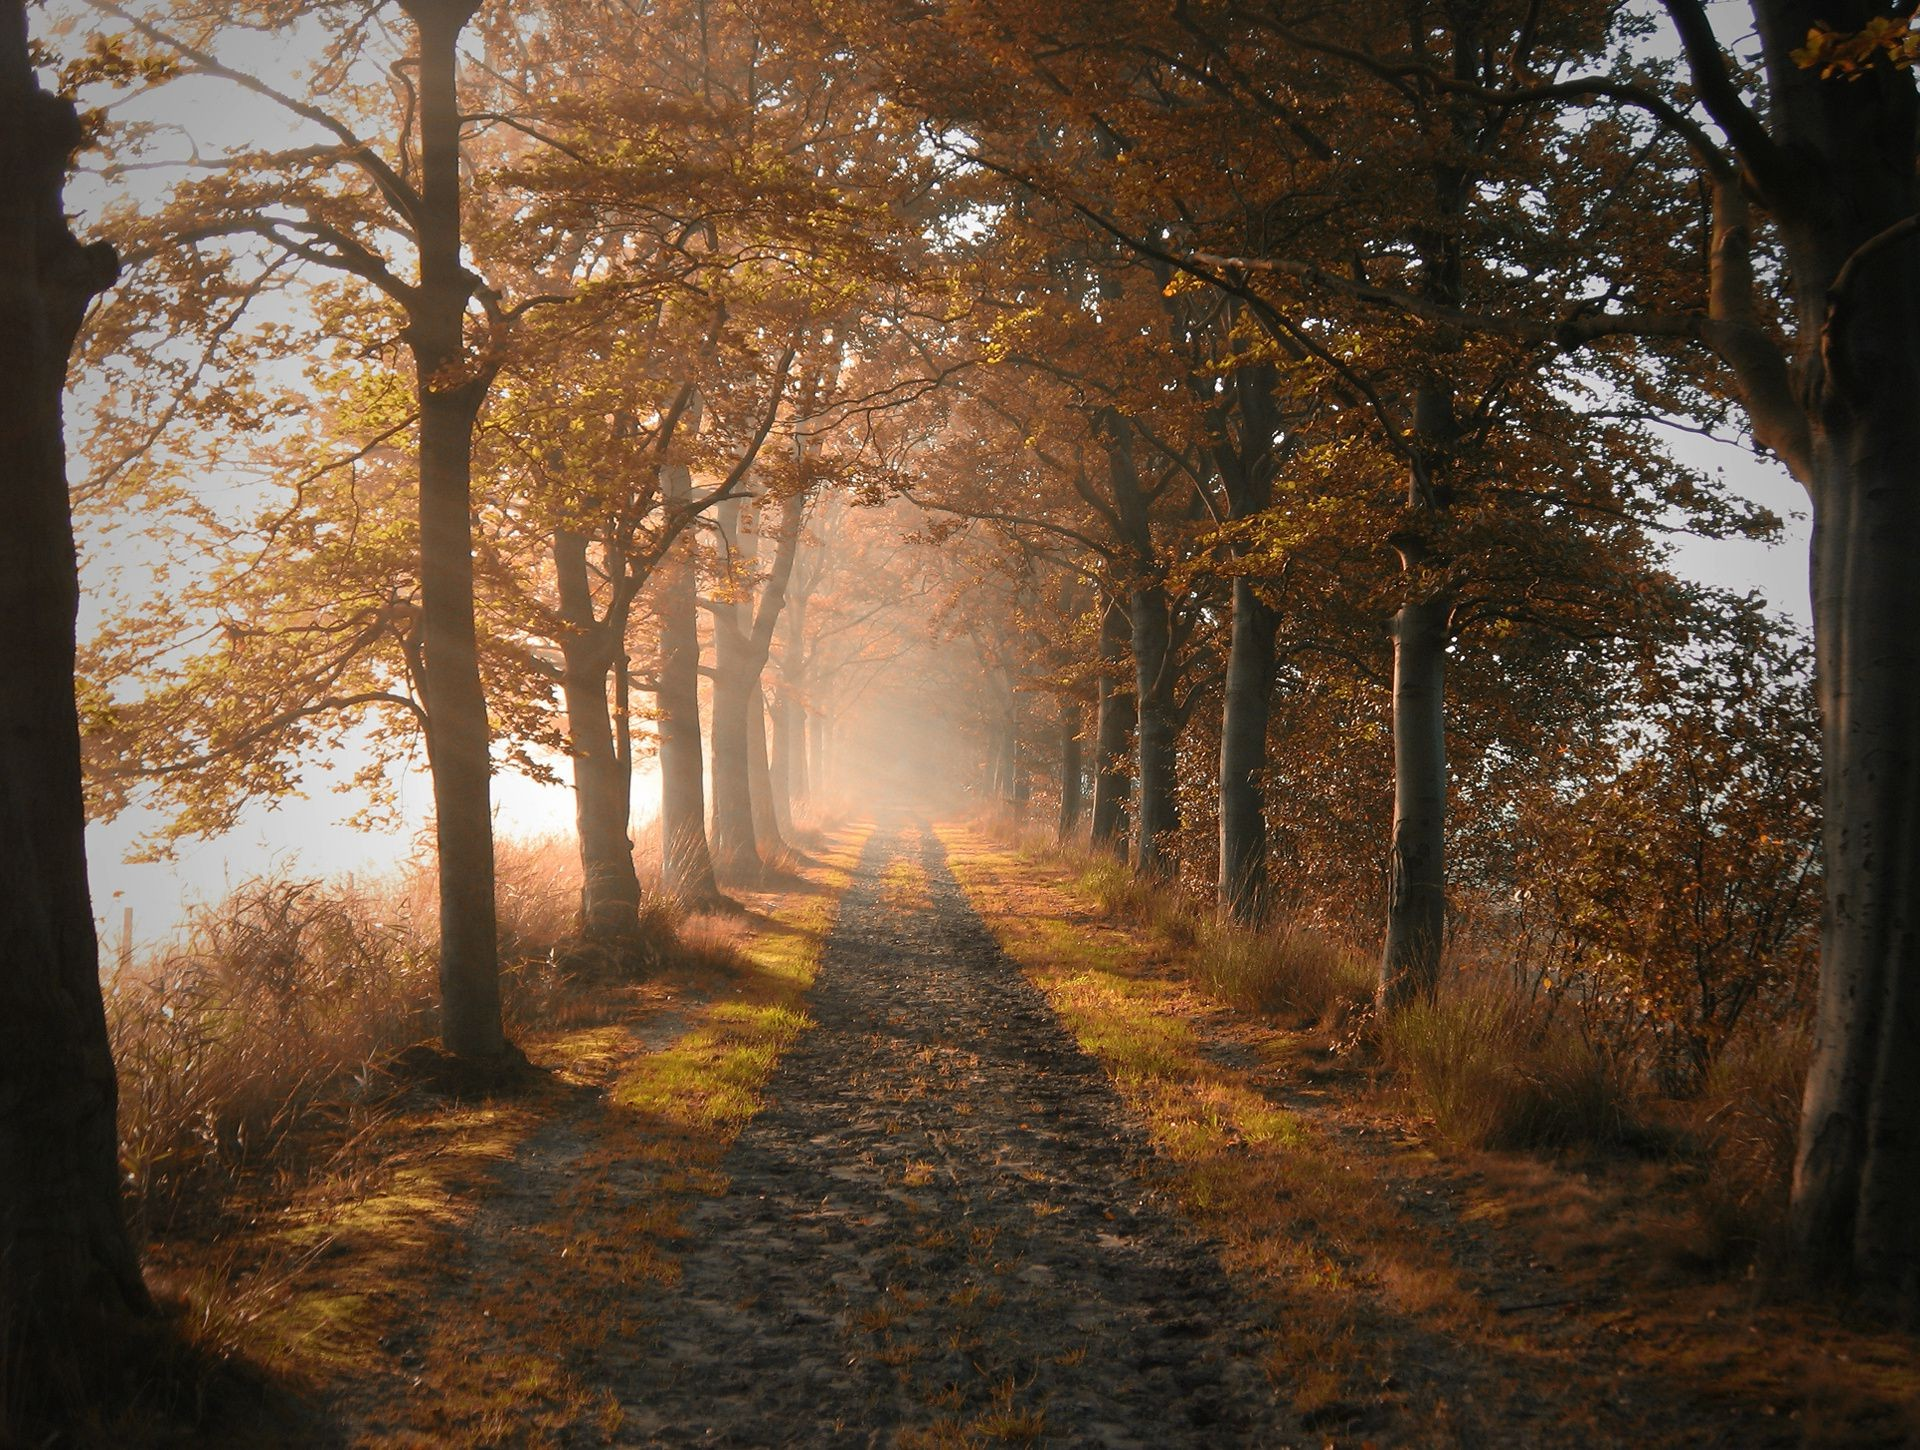 autumn tree fall fog mist dawn landscape wood light leaf alley road park shadow guidance mystery backlit fair weather outdoors nature